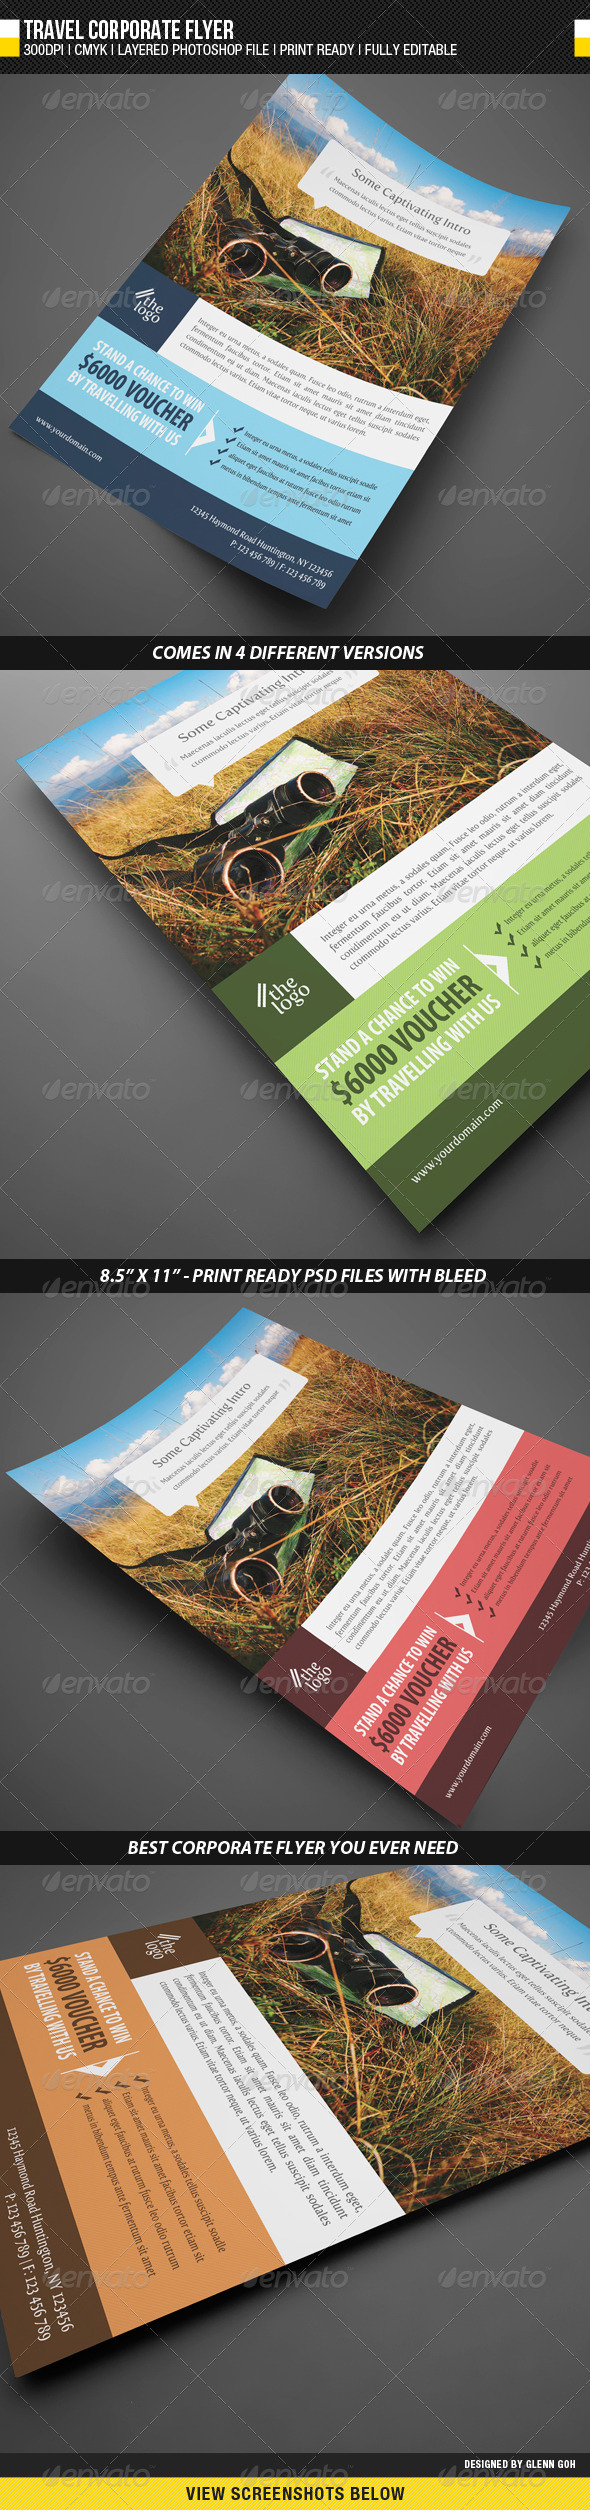 Travel Corporate Flyer - Corporate Flyers